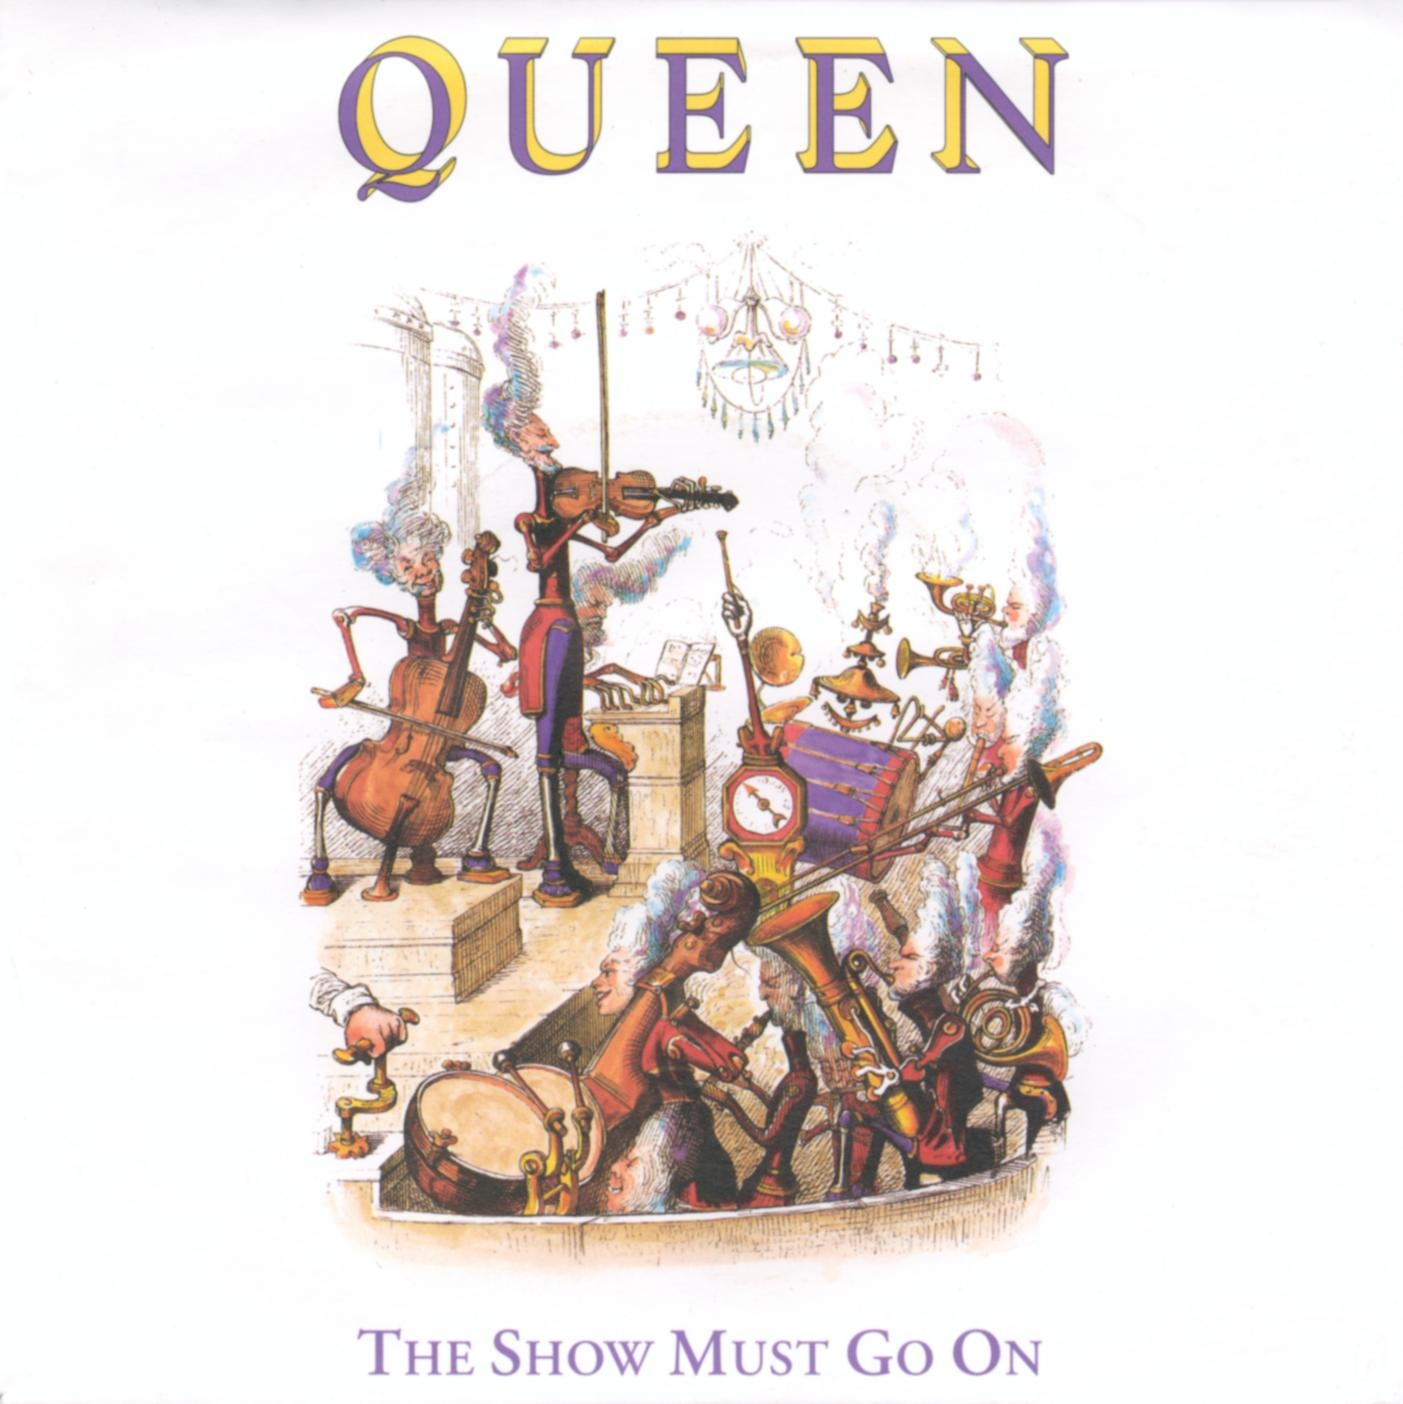 The show must go on (Foto: Queen)